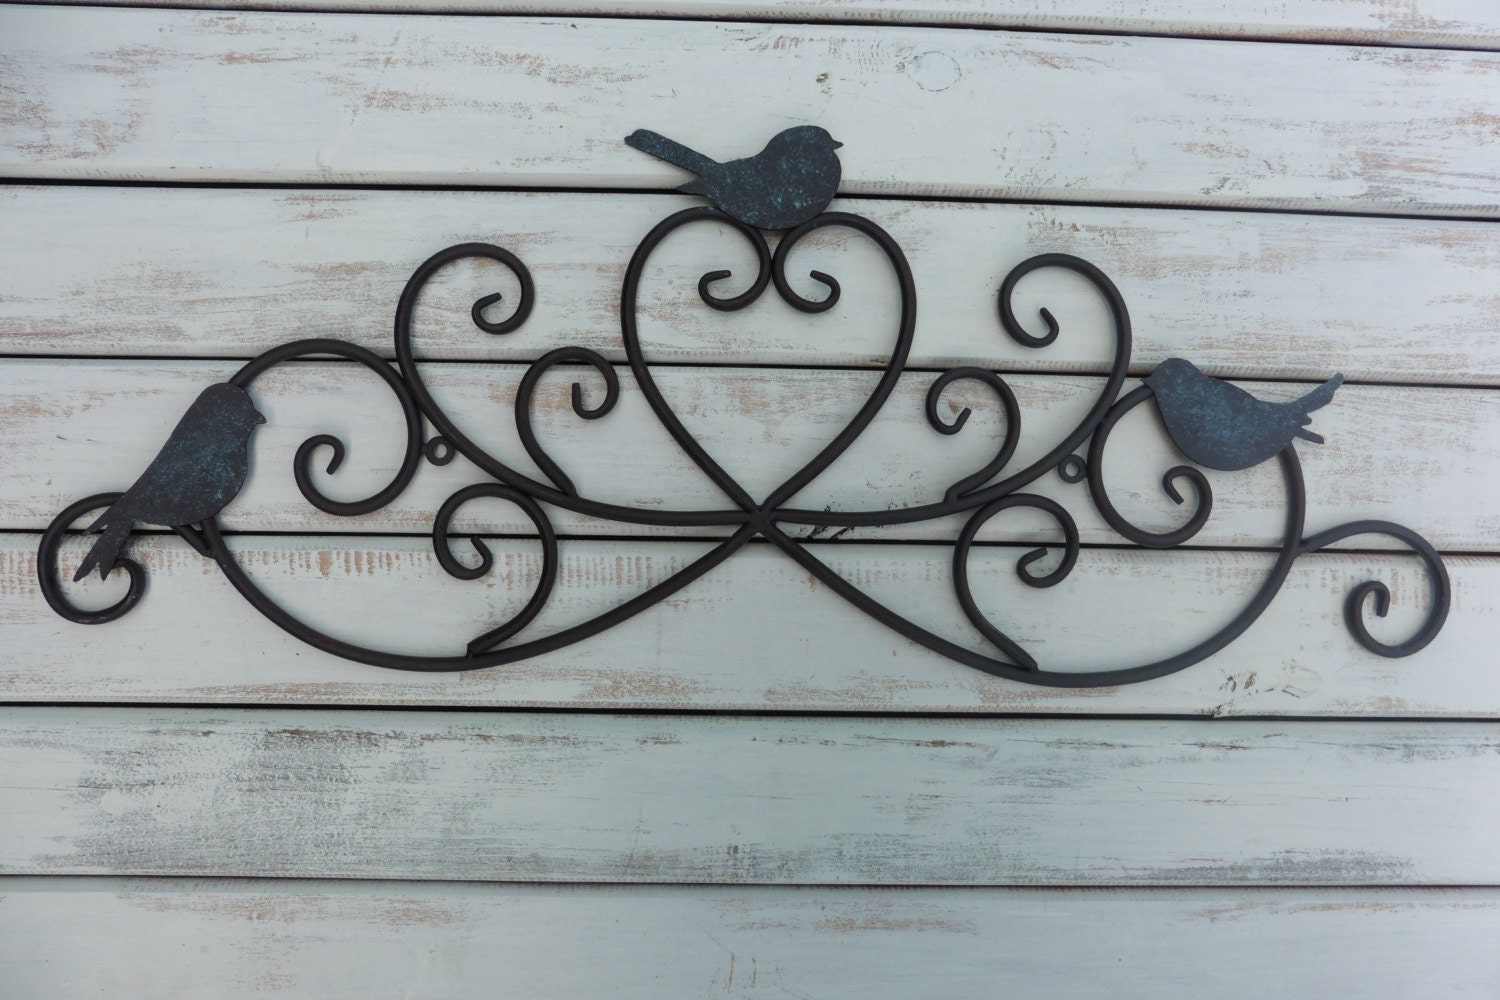 Wall Decor Bird Design : Wrought iron swirl with bird design wall art photo collage